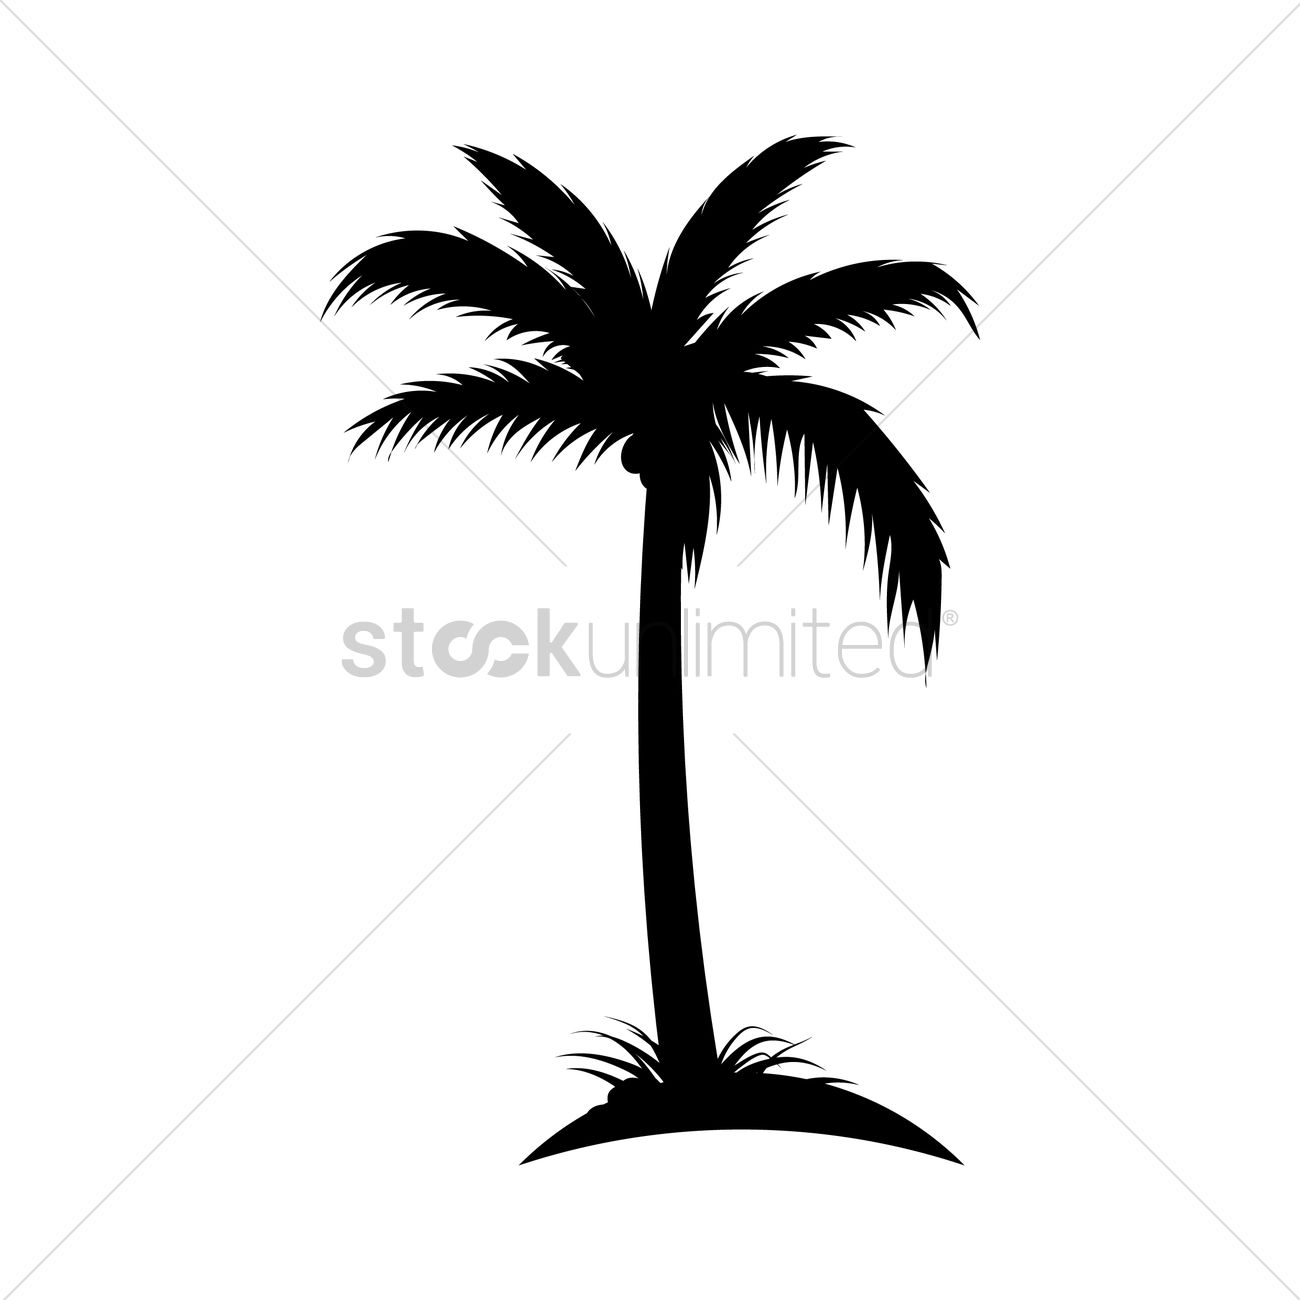 Silhouette Of Coconut Tree Vector Image